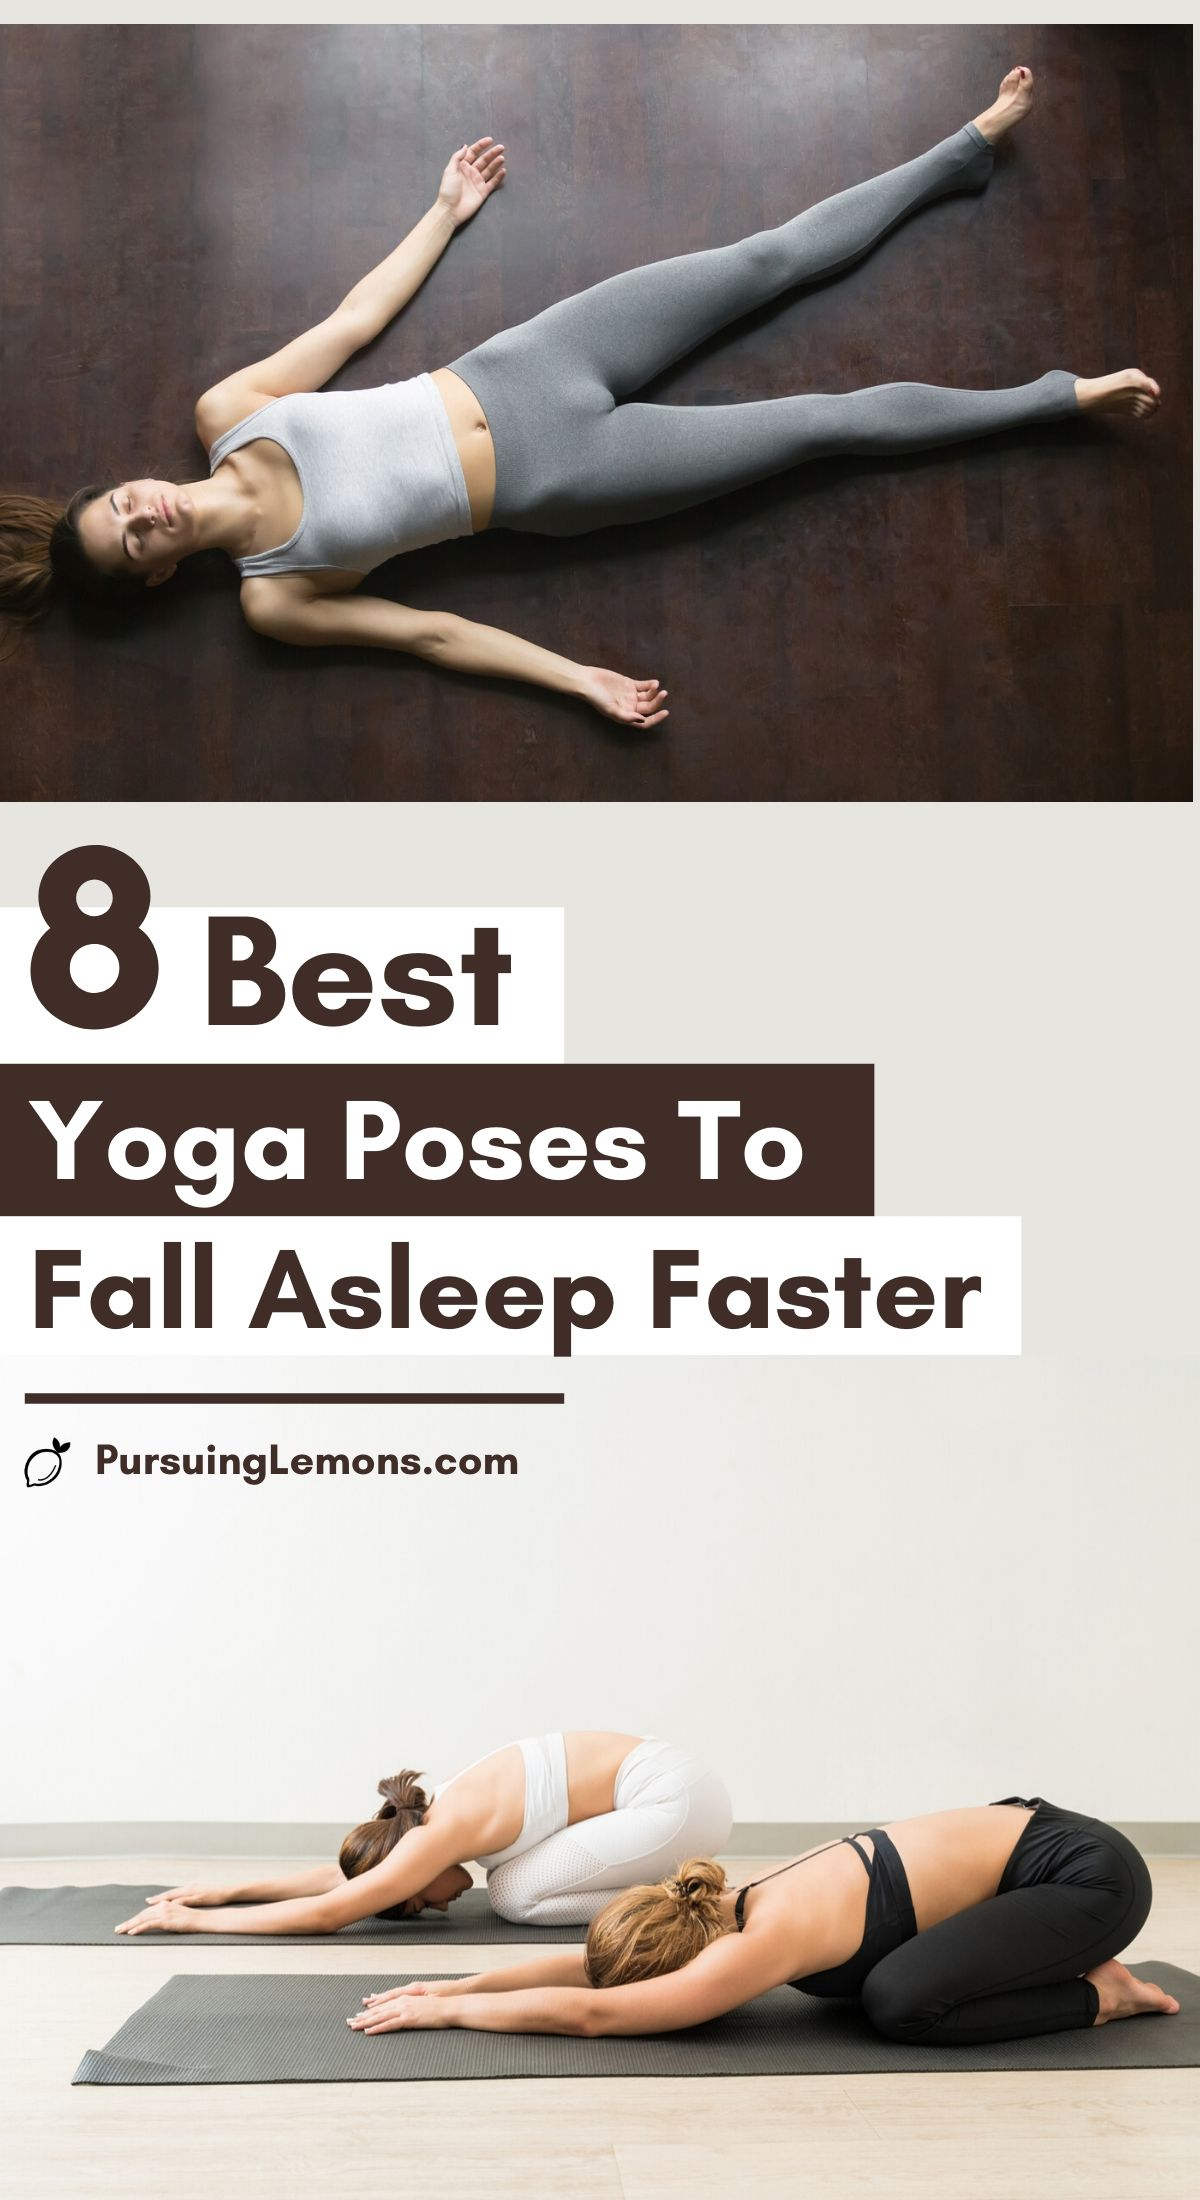 8 of the Best Yoga Poses To Fall Asleep Faster   Getting good quality sleep can be difficult for some of us. Lack of quality sleep can also be bad for health and productivity. By practicing this yoga sequence, you can now achieve better sleep! #yoga #yogaforsleep #bettersleep